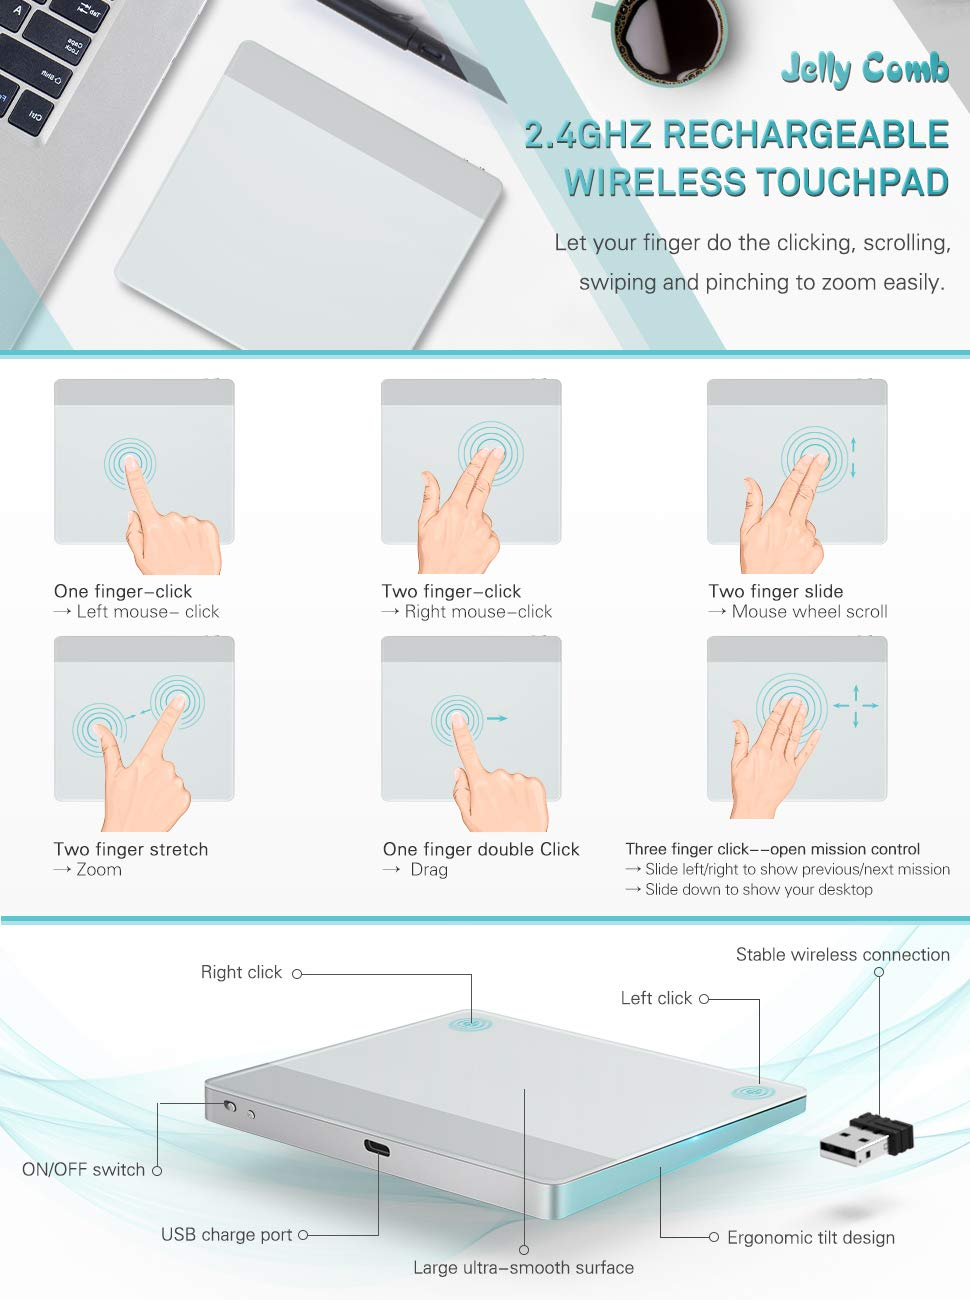 Wireless Trackpad, Jelly Comb 2 4GHz Rechargeable Touchpad